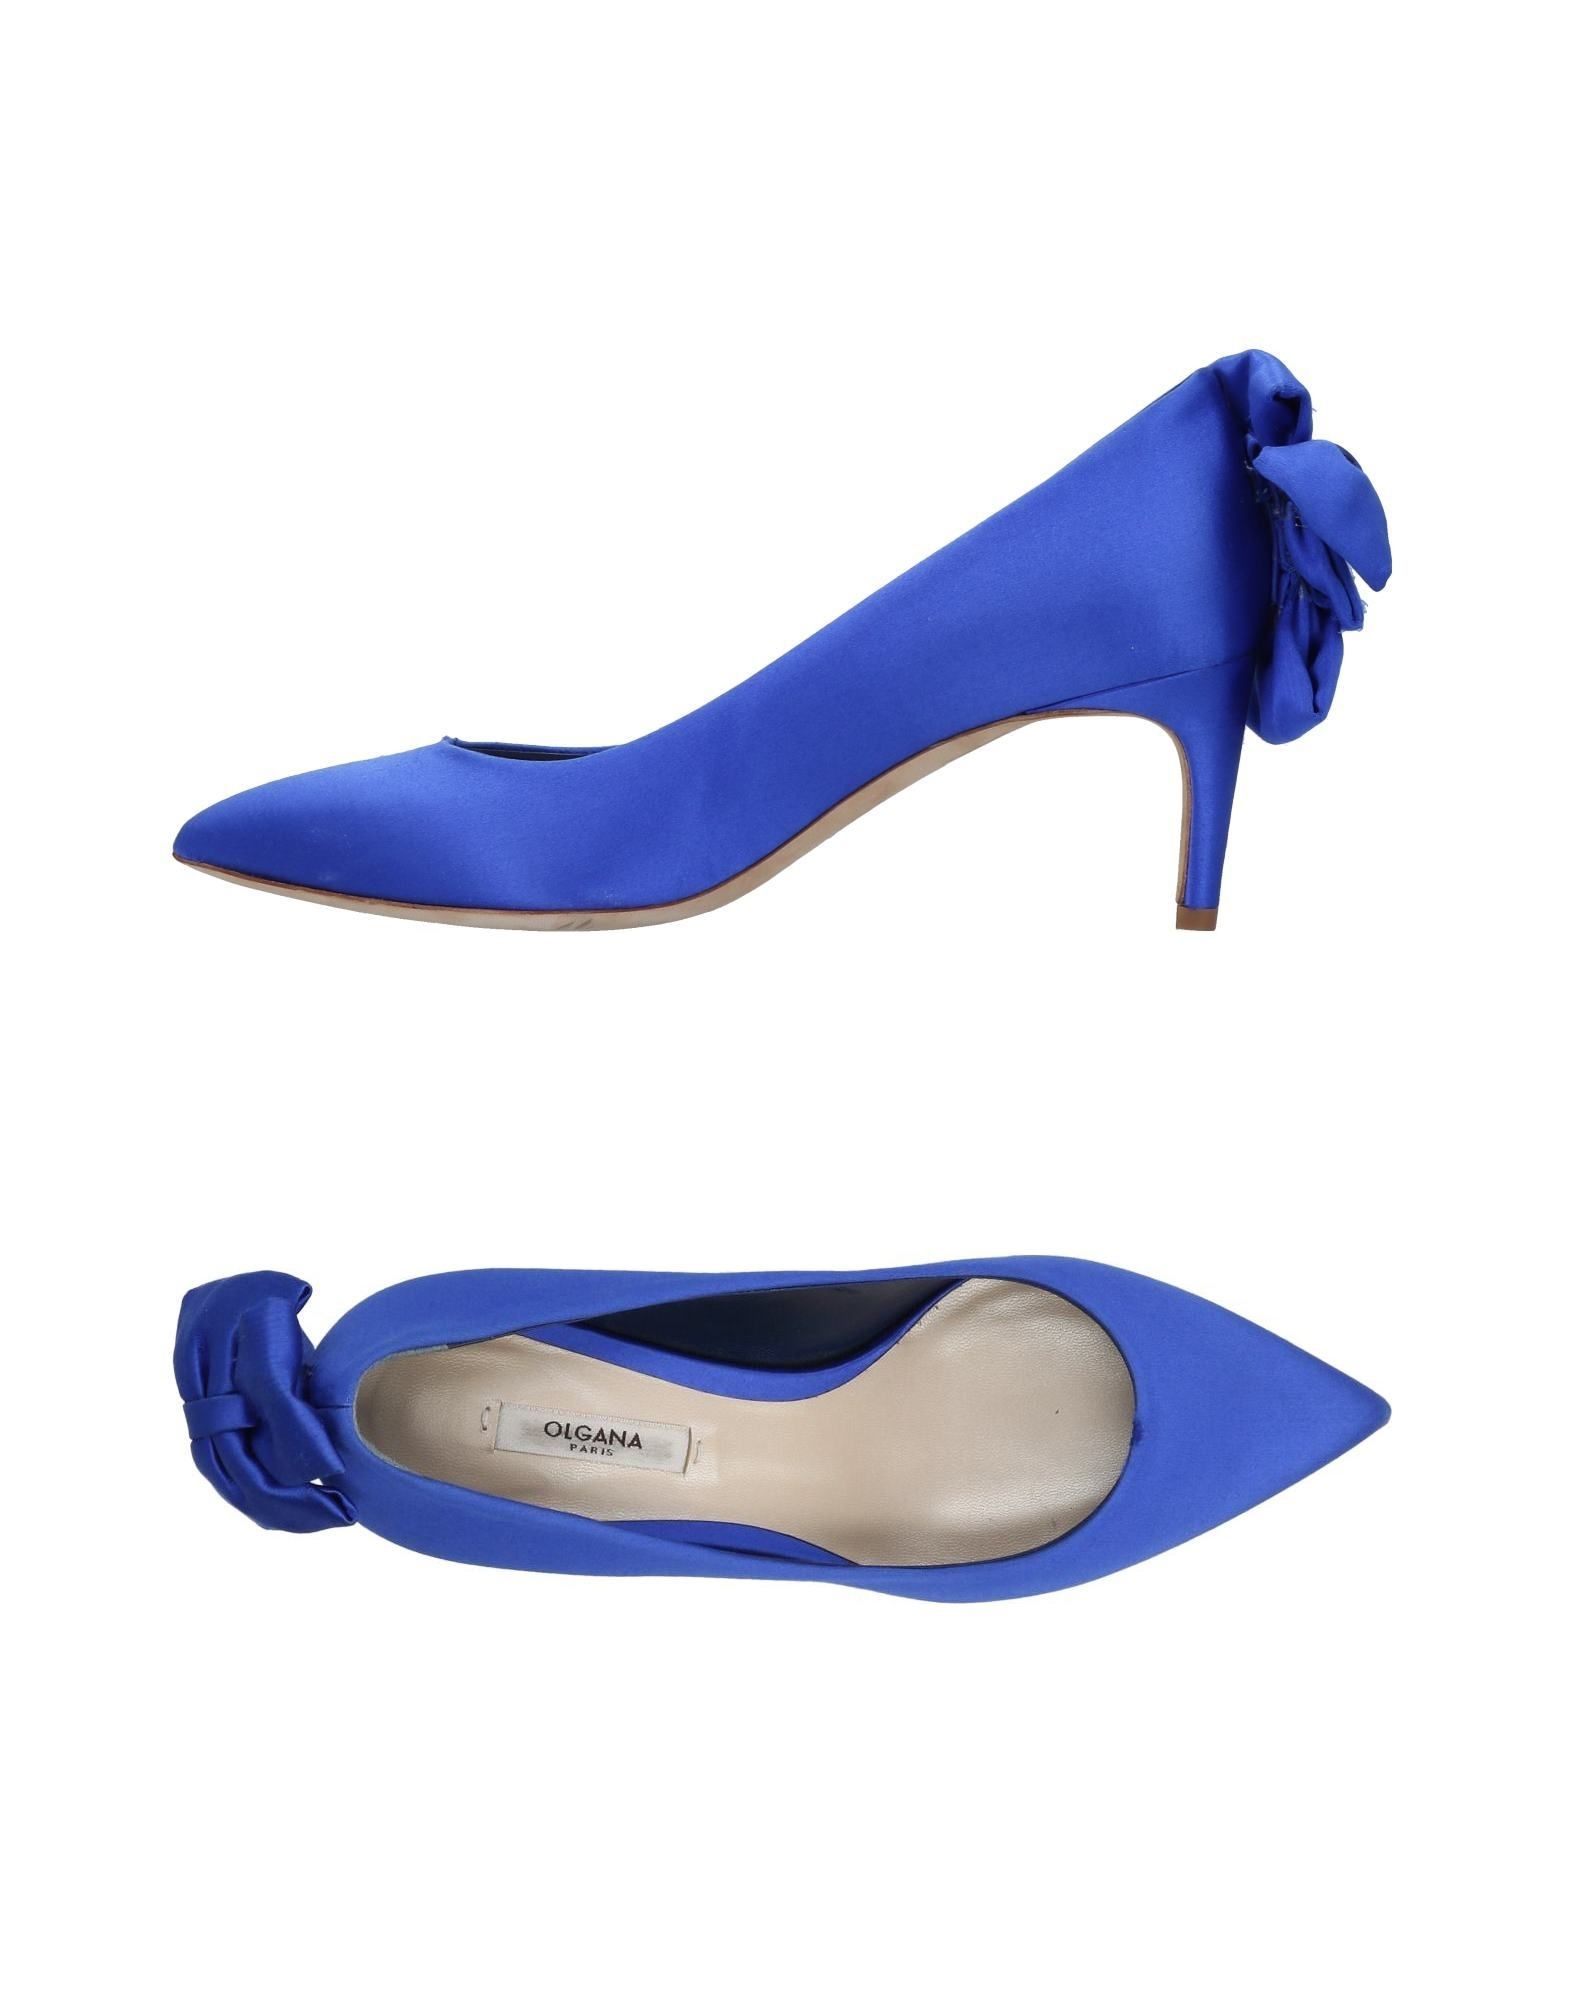 OLGANA PARIS Pump in Blue